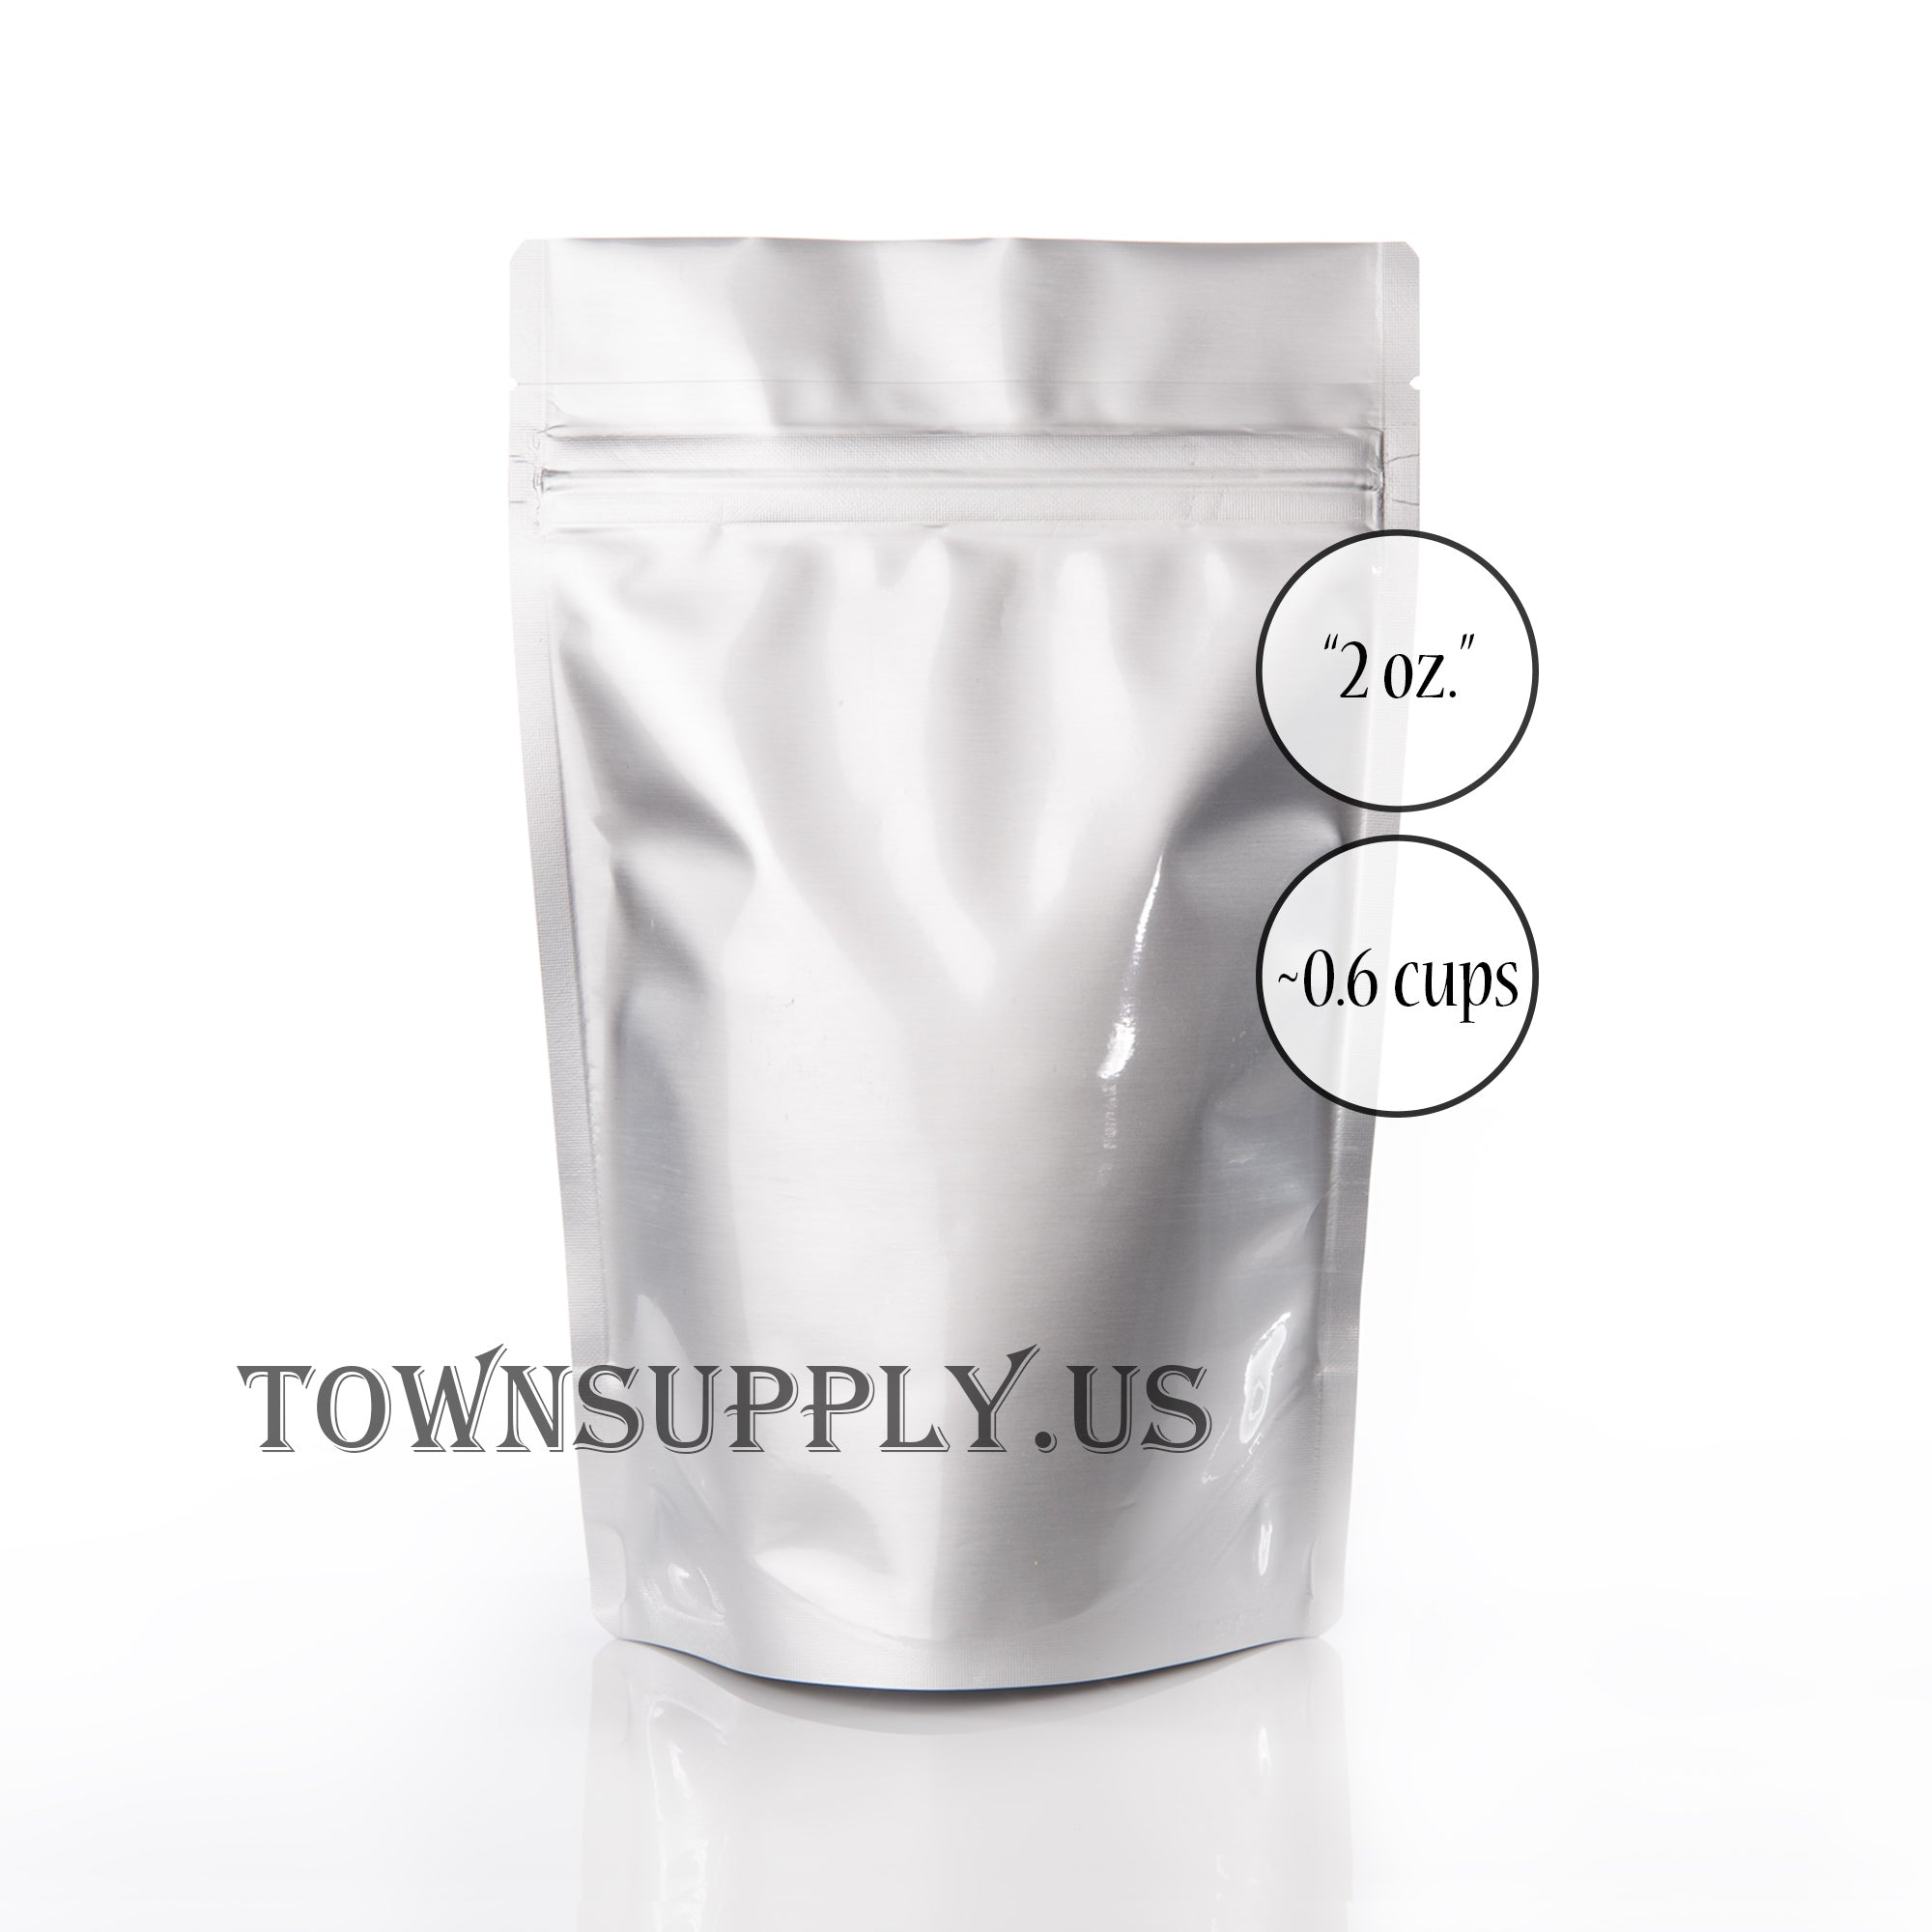 shiny silver resealable stand up pouch, 2 oz. bags - Town Supply